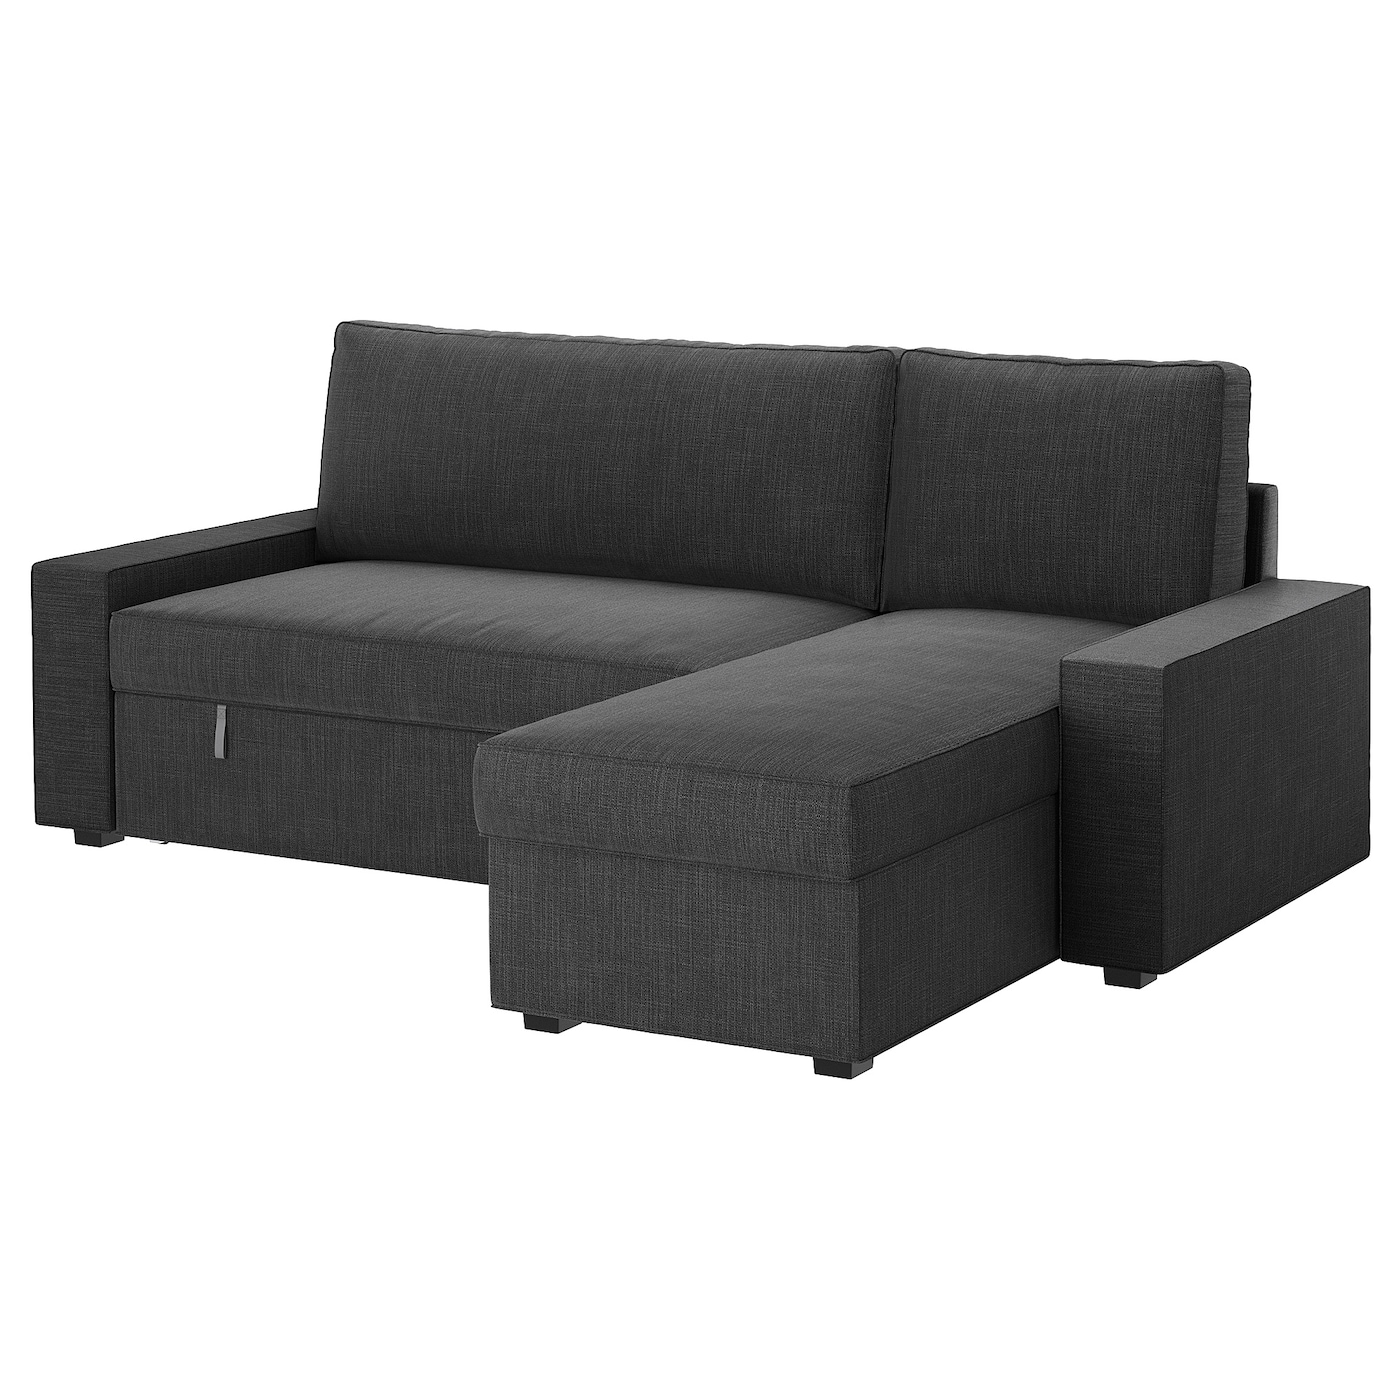 VILASUND Sofa bed with chaise longue Hillared anthracite IKEA